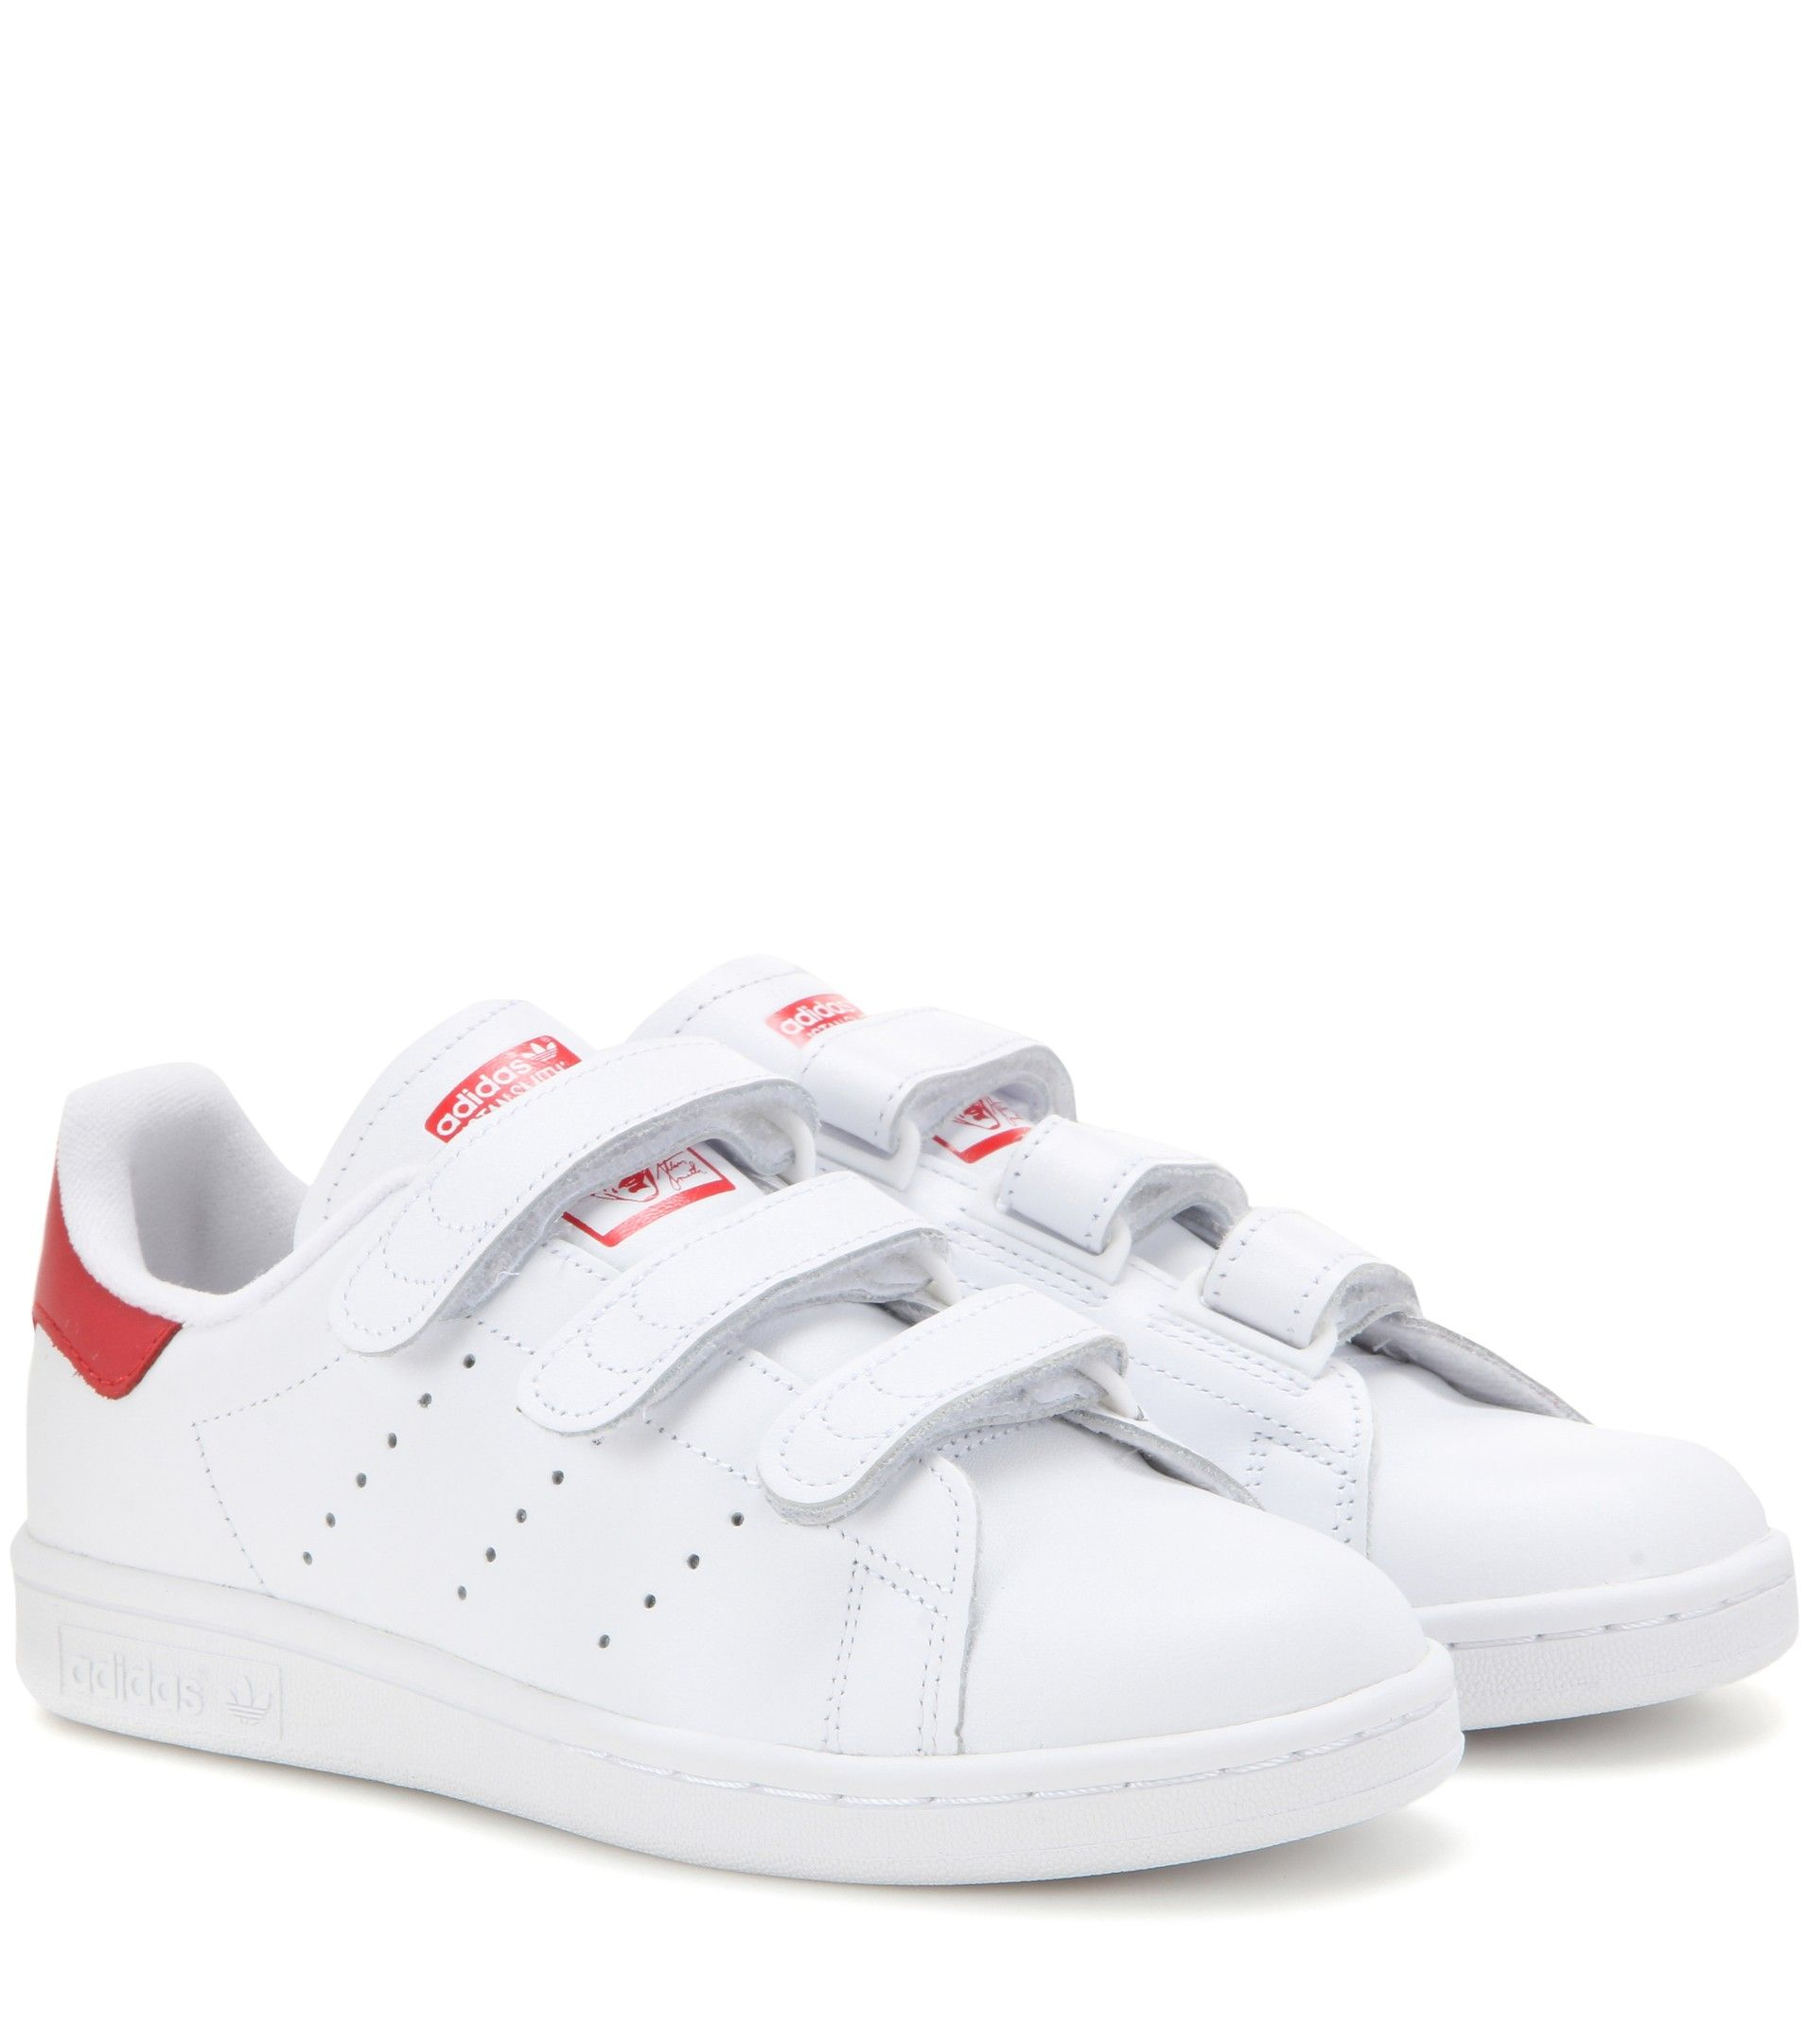 6f23cef4bb573 Adidas - Stan Smith leather sneakers - We love Adidas s Stan Smith sneakers